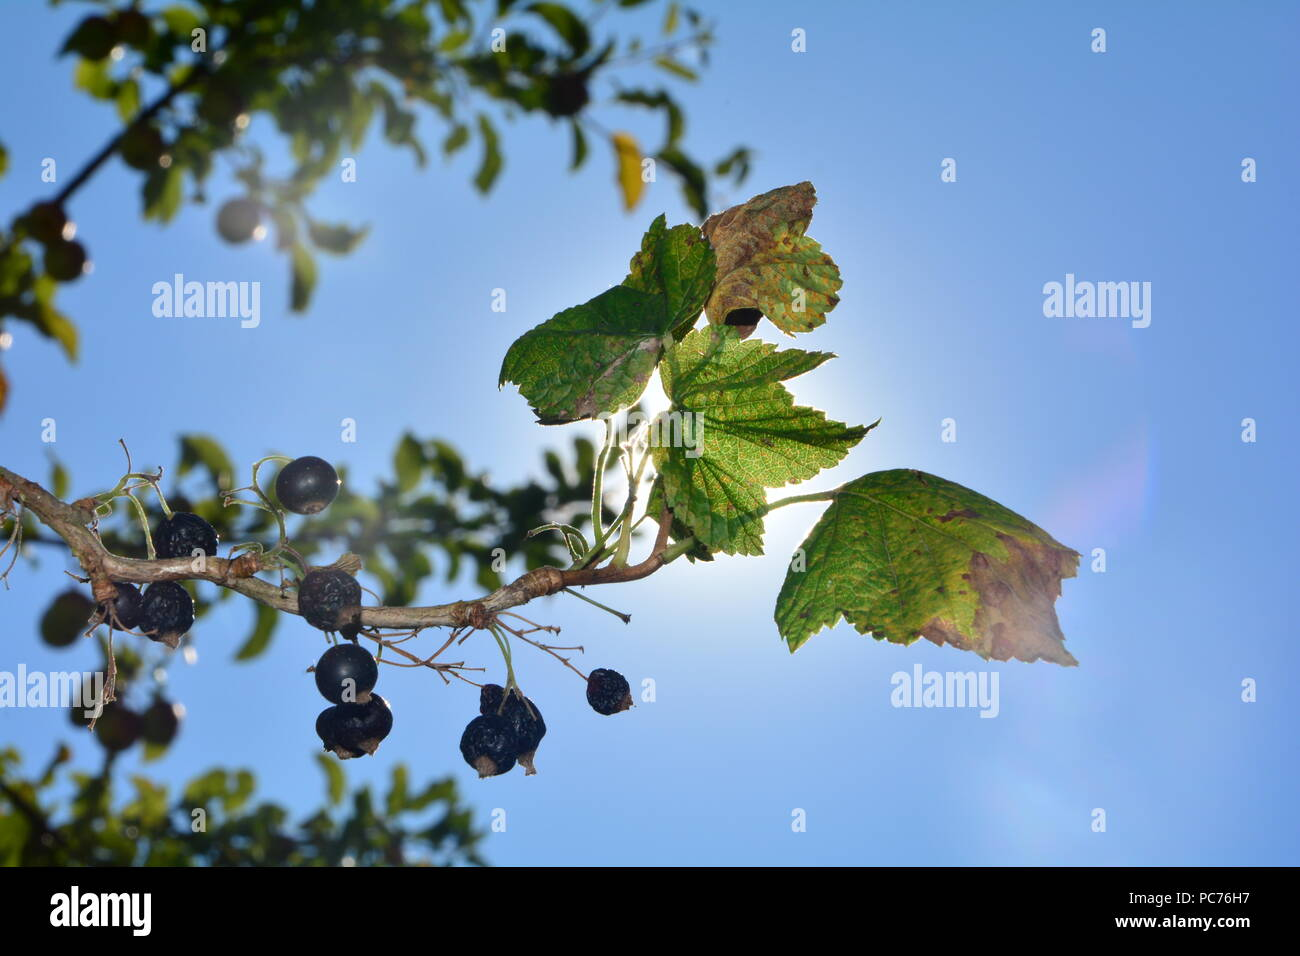 Dried berries with brown leaves on the branch in front of blue sky with sun - Stock Image